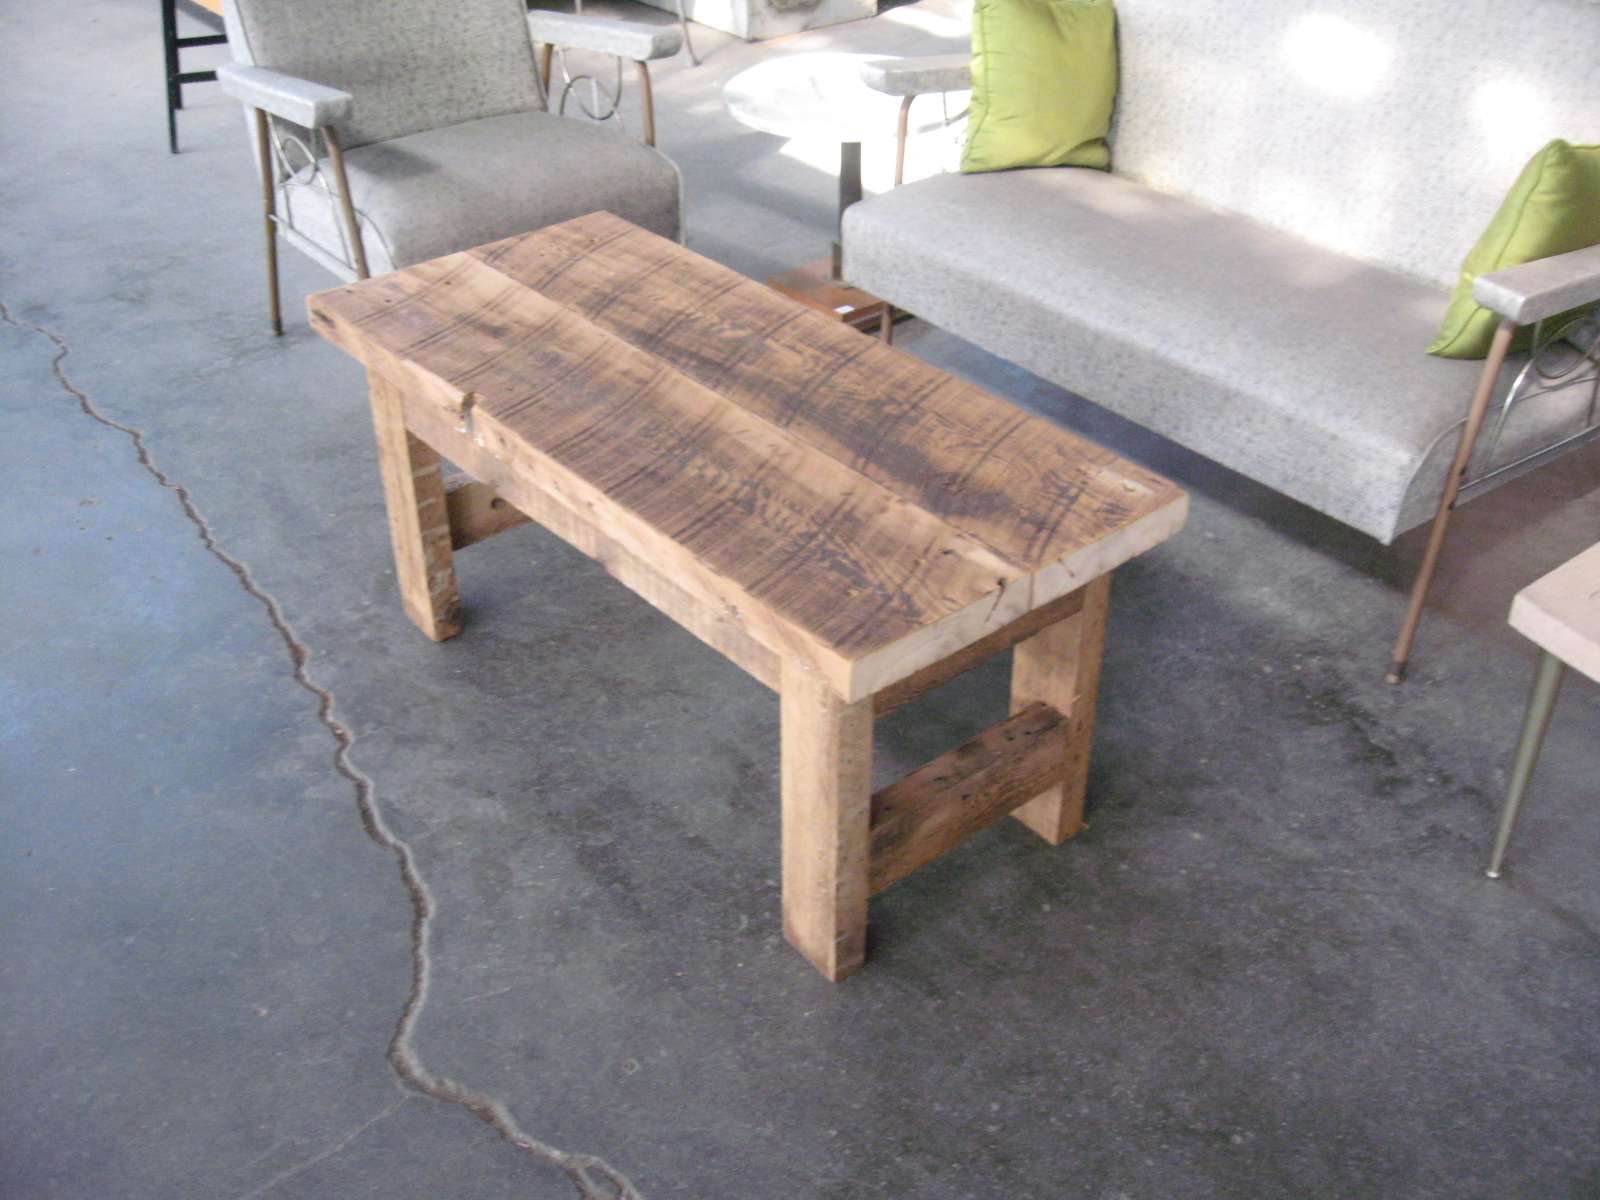 Charmant Build Your Own Coffee Table Saturday Sept. 10th